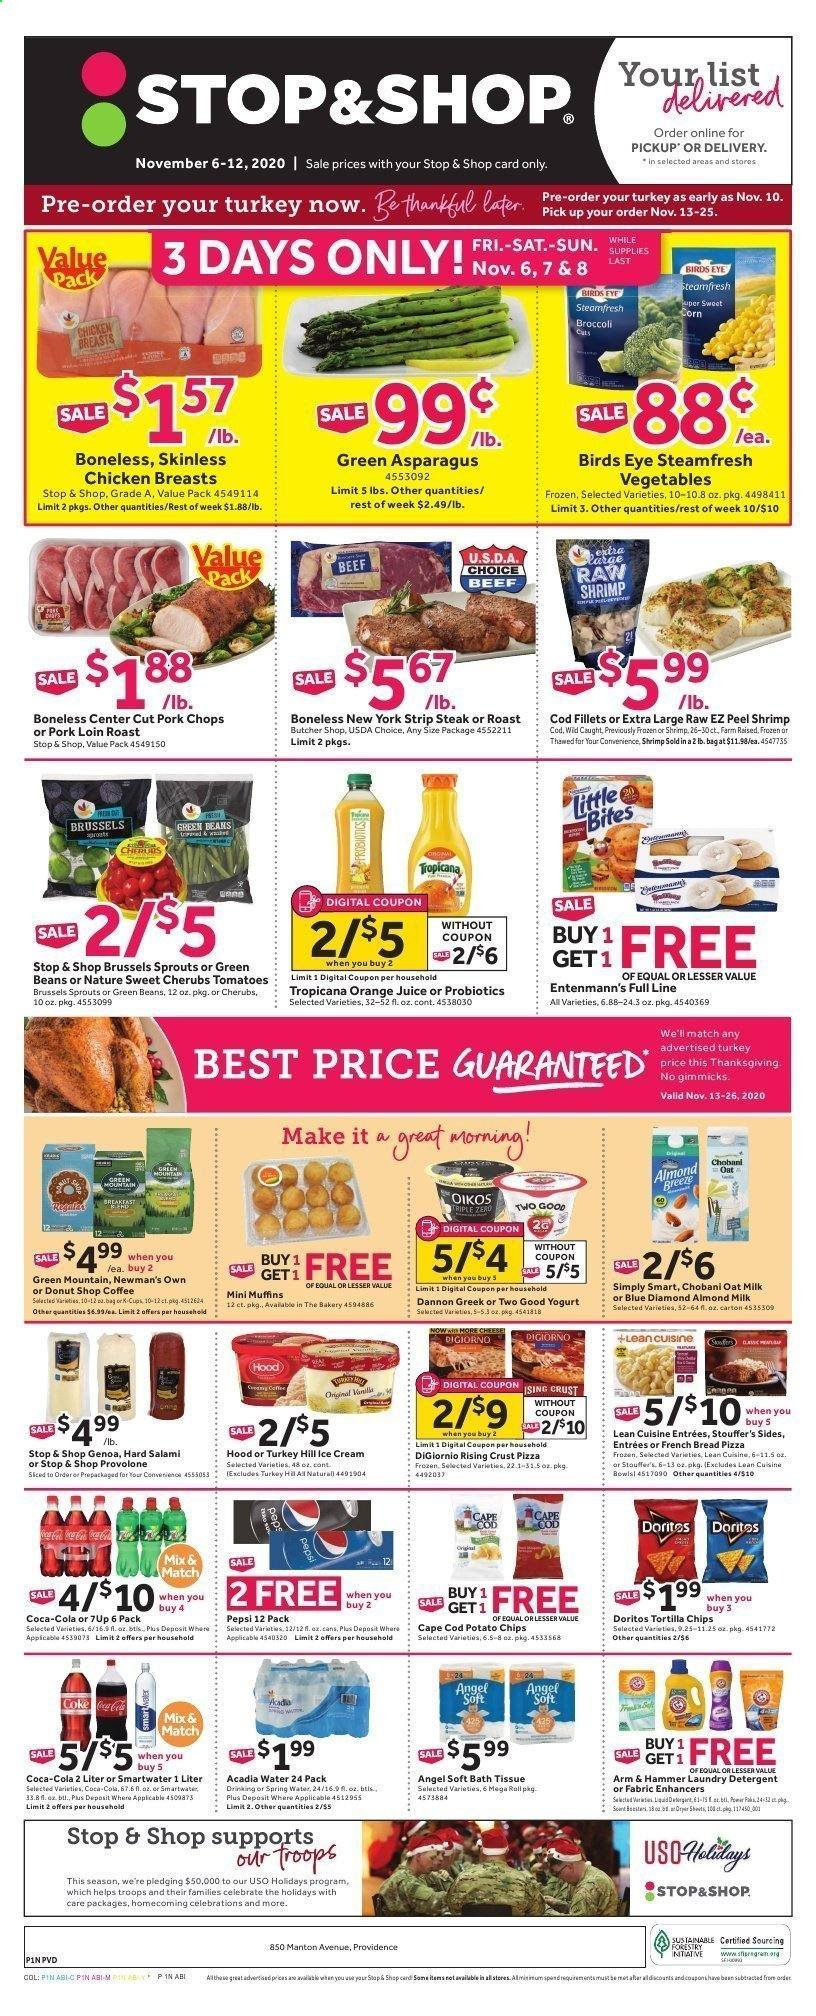 Stop & Shop Flyer - 11.06.2020 - 11.12.2020 - Sales products - almond milk, ARM & HAMMER, asparagus, bag, bath tissue, beans, beef meat, bread, broccoli, brussels sprouts, Coca-Cola, cod, coffee, corn, detergent, Doritos, frozen, green beans, muffins, salami, spring water, tomatoes, tortilla chips, turkey, hoodie, ice cream, pin, pizza, pork chops, pork loin, pork meat, potato chips, probiotics, provolone, chicken, chicken breast, Pepsi, orange juice, orange, chips, steak, cheese, juice, Vegetables, hammer, laundry detergent, shrimps, donut, vegetable, spring. Page 1.